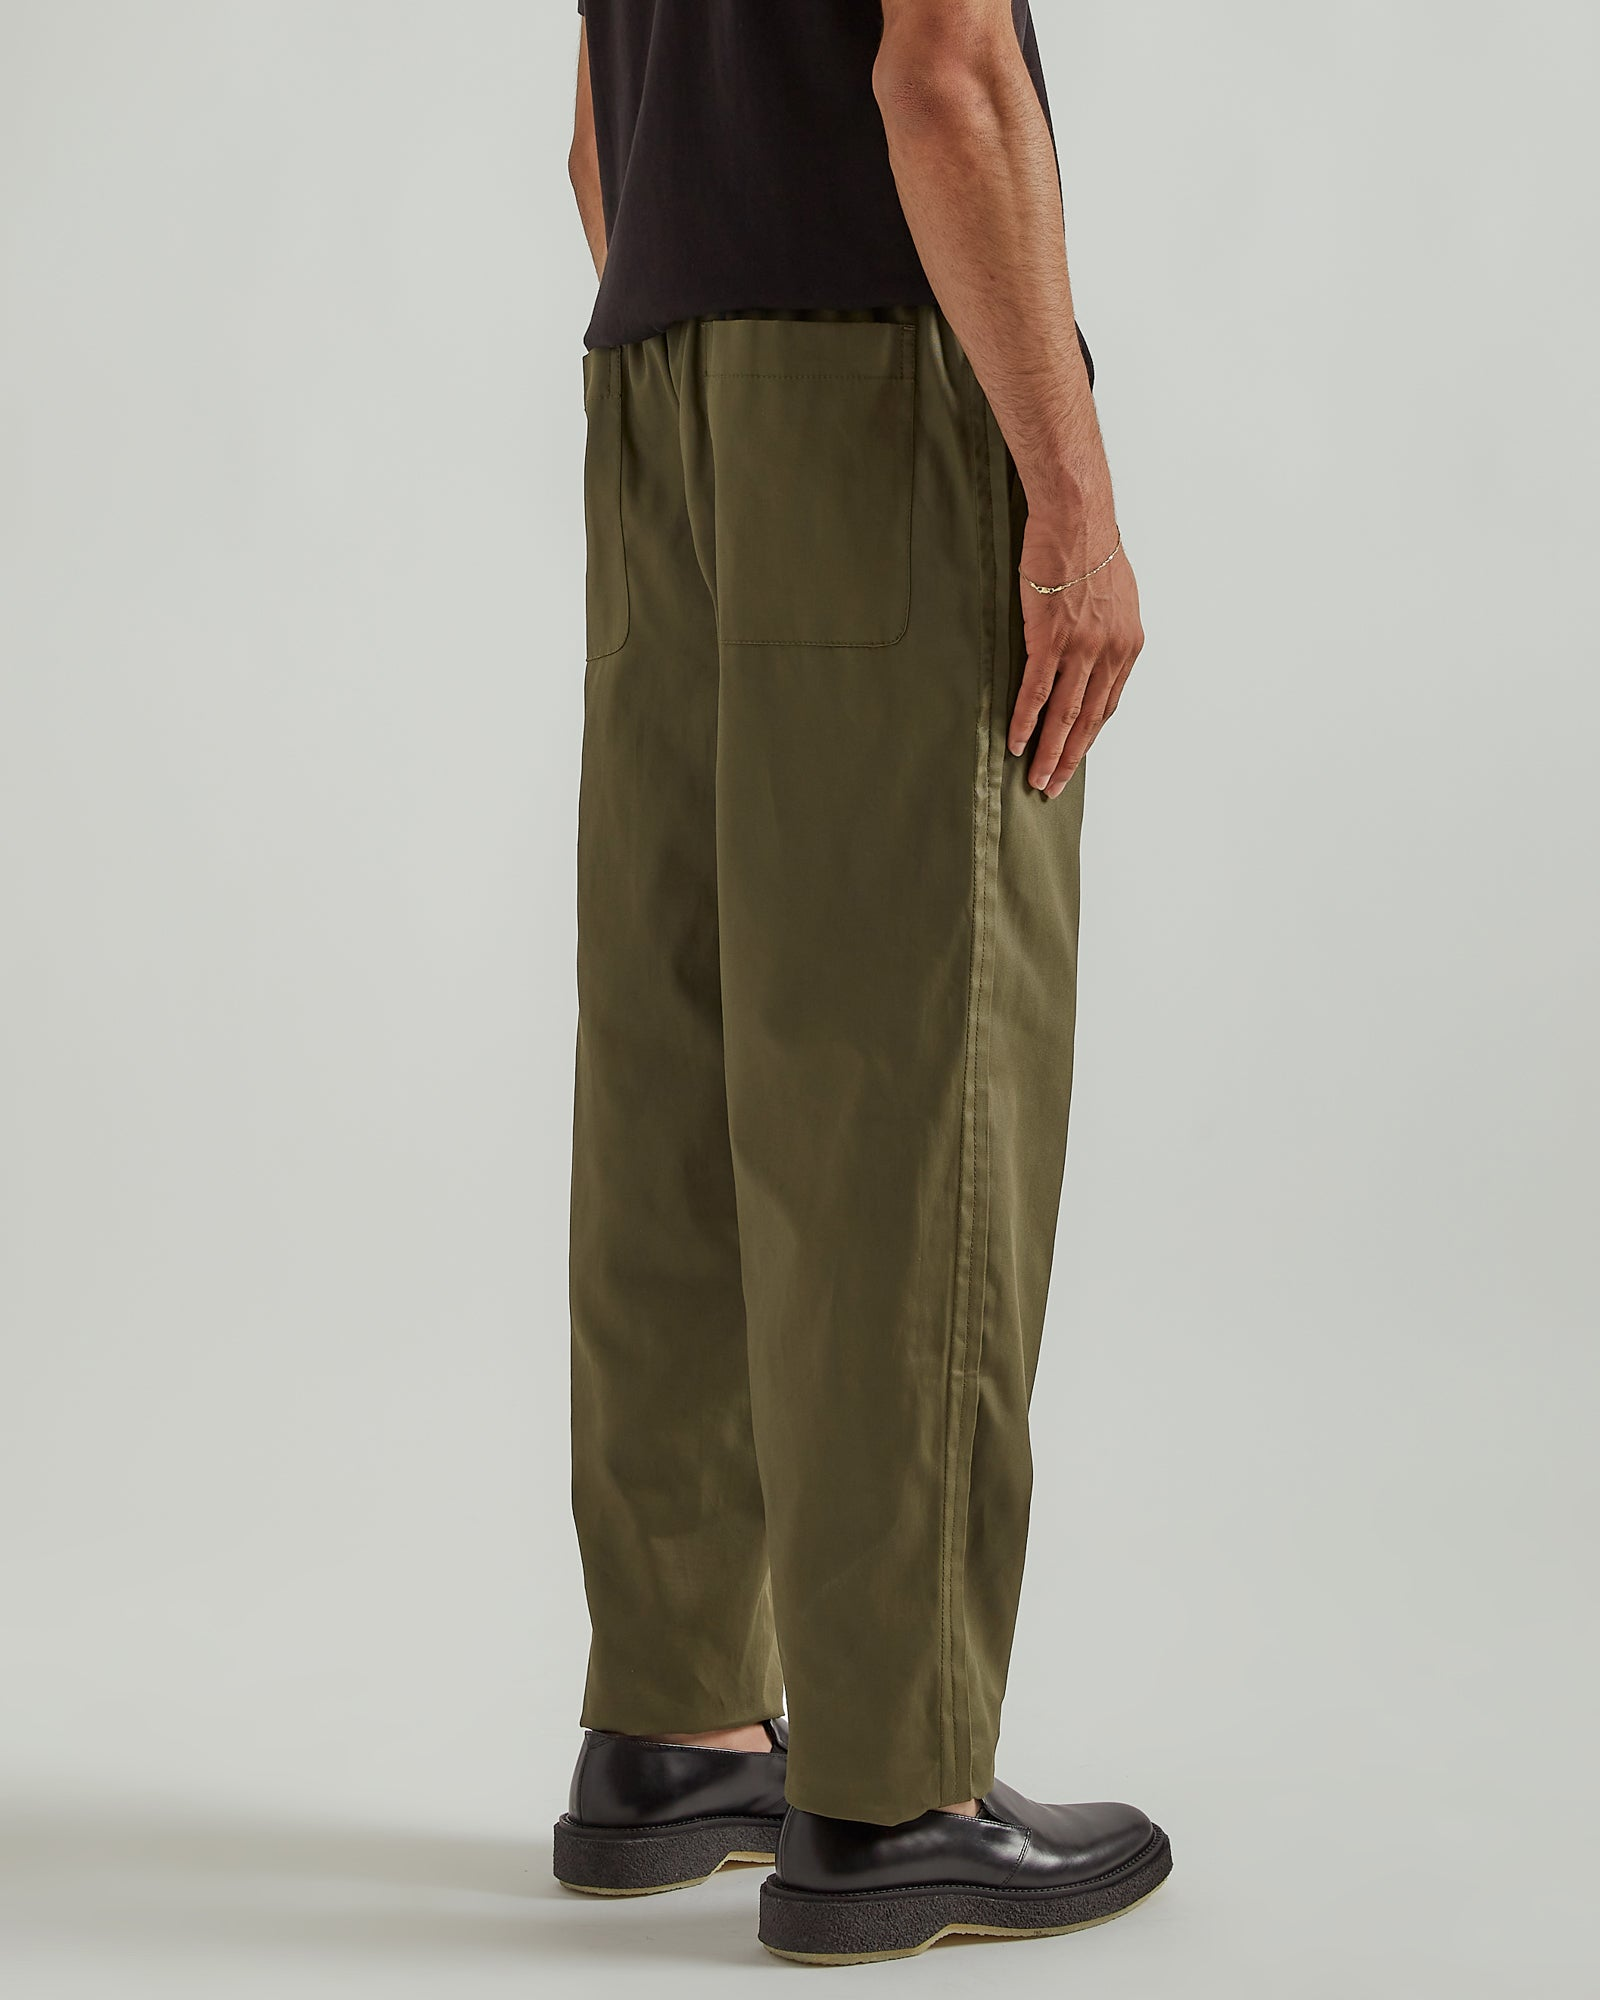 Easy Pants in Khaki